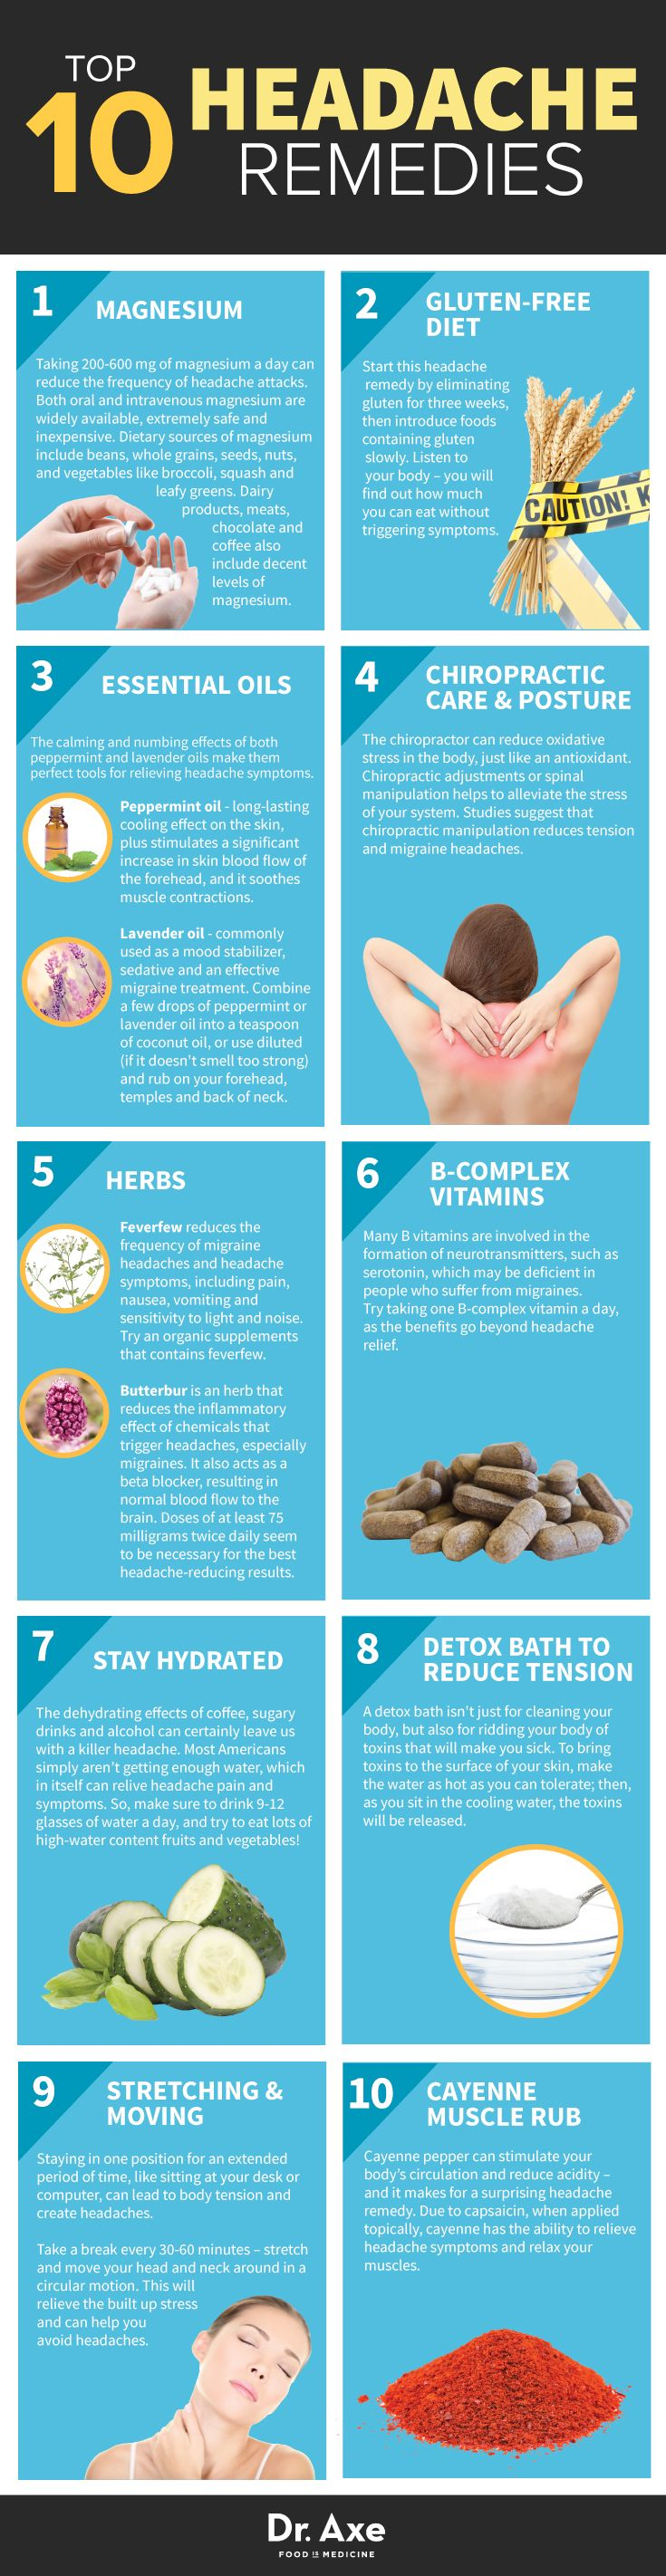 10 remedios para el dolor de cabeza. Headache Remedies http://www.draxe.com #health #holistic #natural